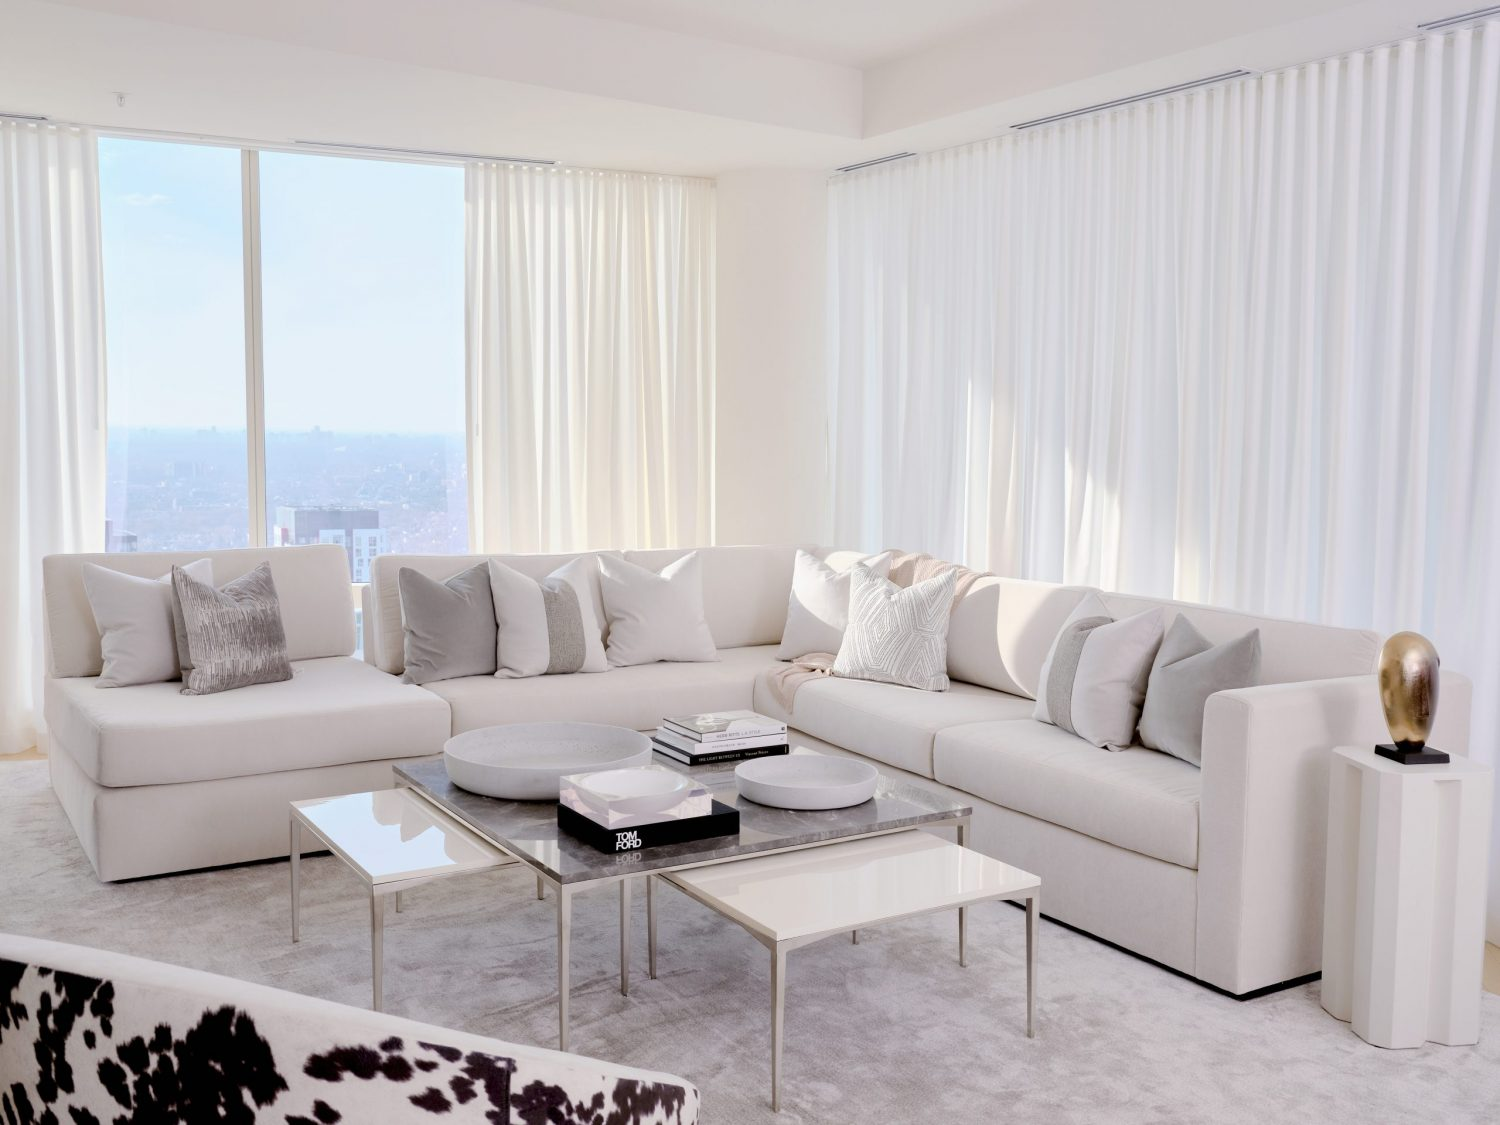 Bright and airy living room design